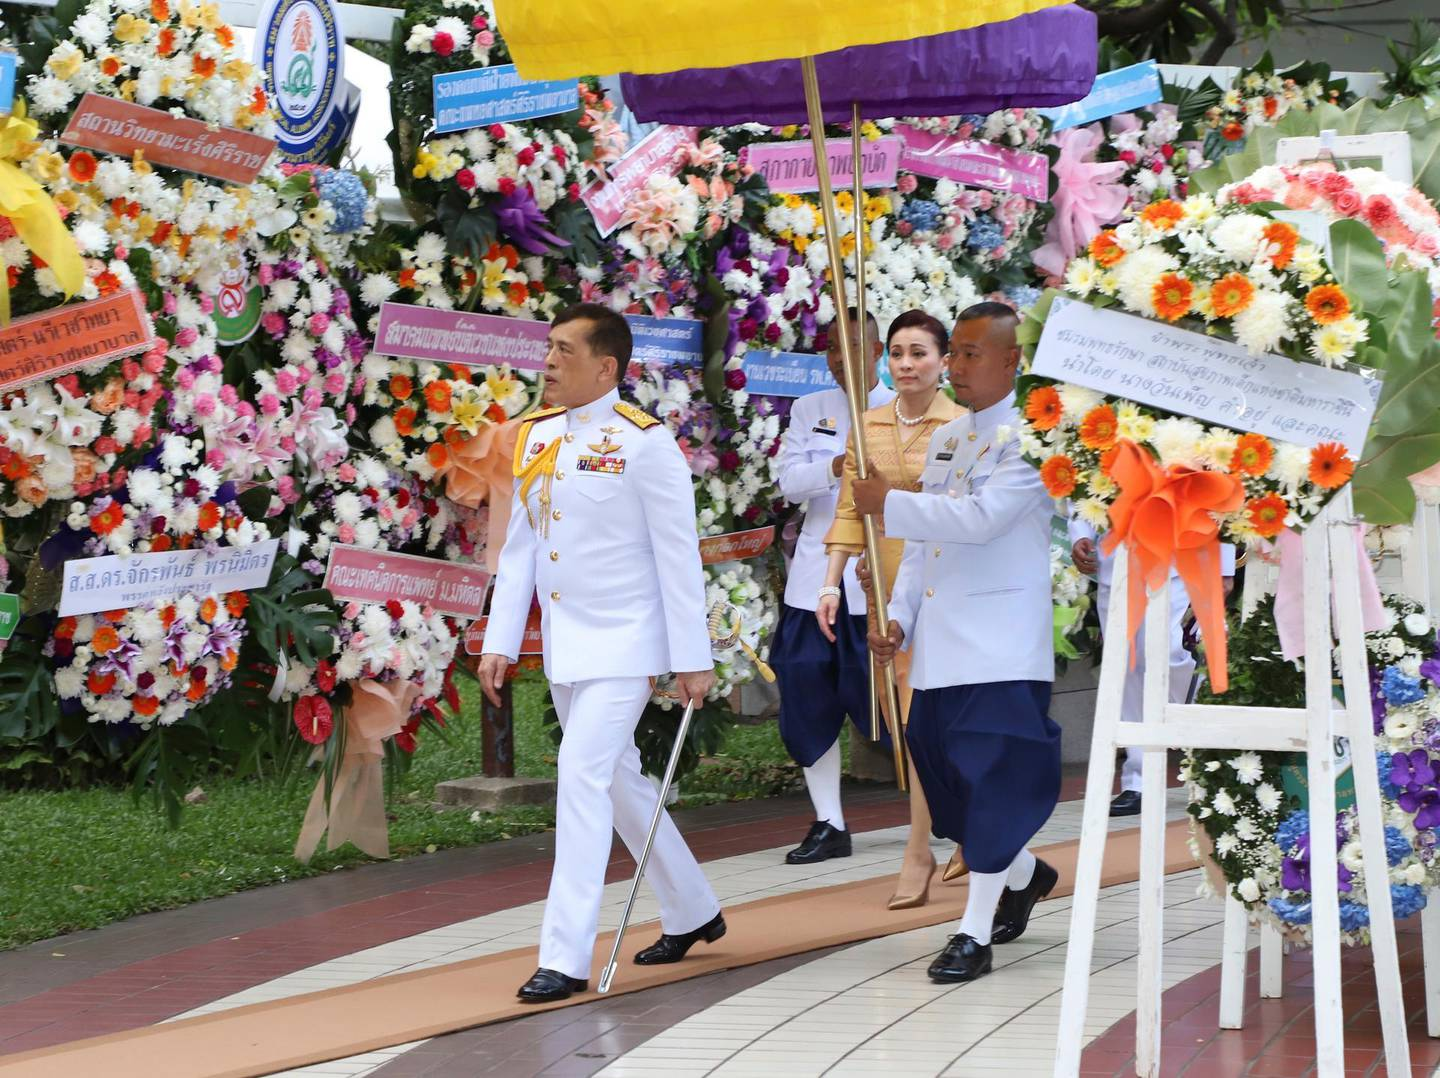 Thailand's King Maha Vajiralongkorn and Queen Suthida arrive at the Siriraj Hospital in Bangkok, Thailand, Thursday, Sept. 24, 2020. King Maha Vachiralongkorn and Queen Suthida are presiding over the wreath laying ceremony on Mahidol day, which the memorable event to his grandfather who was considered as the founding father of Thailand's modern medicine. (Mitichon Newspaper via AP)